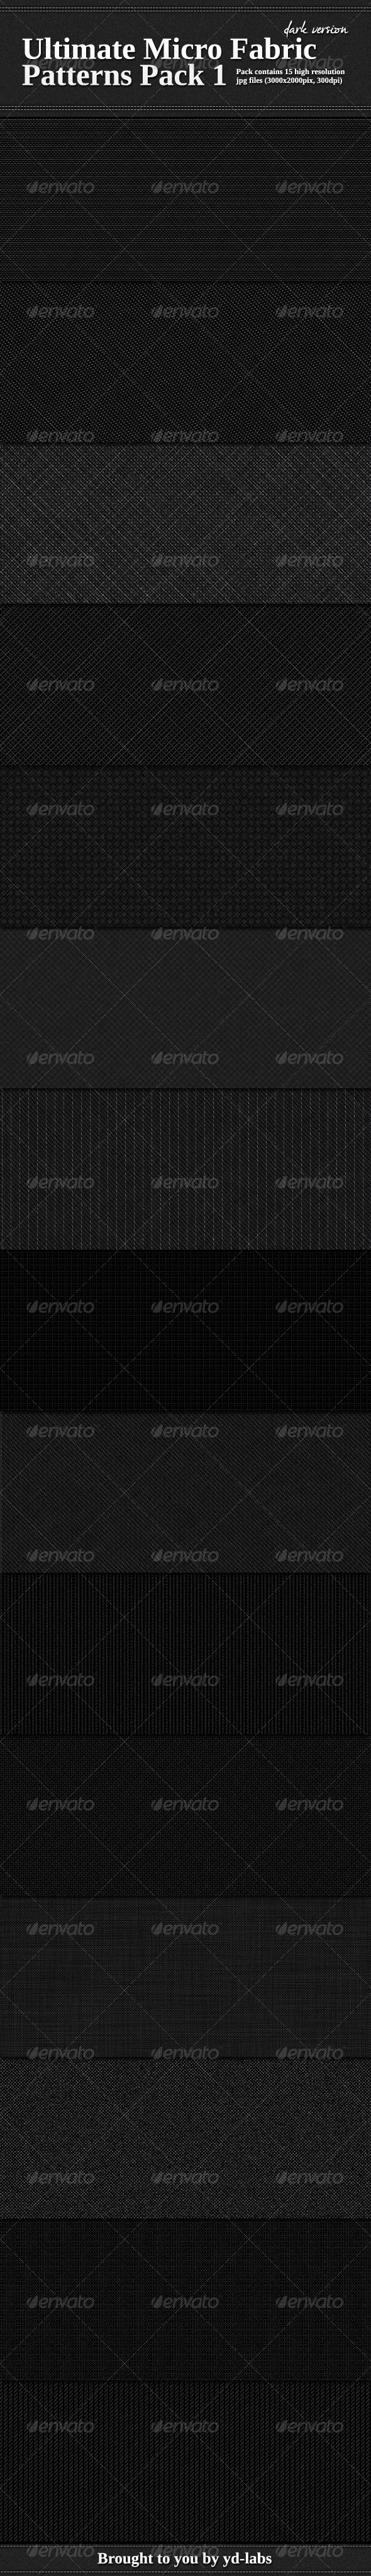 GraphicRiver Ultimate Micro Fabric Patterns Pack 1 1722535